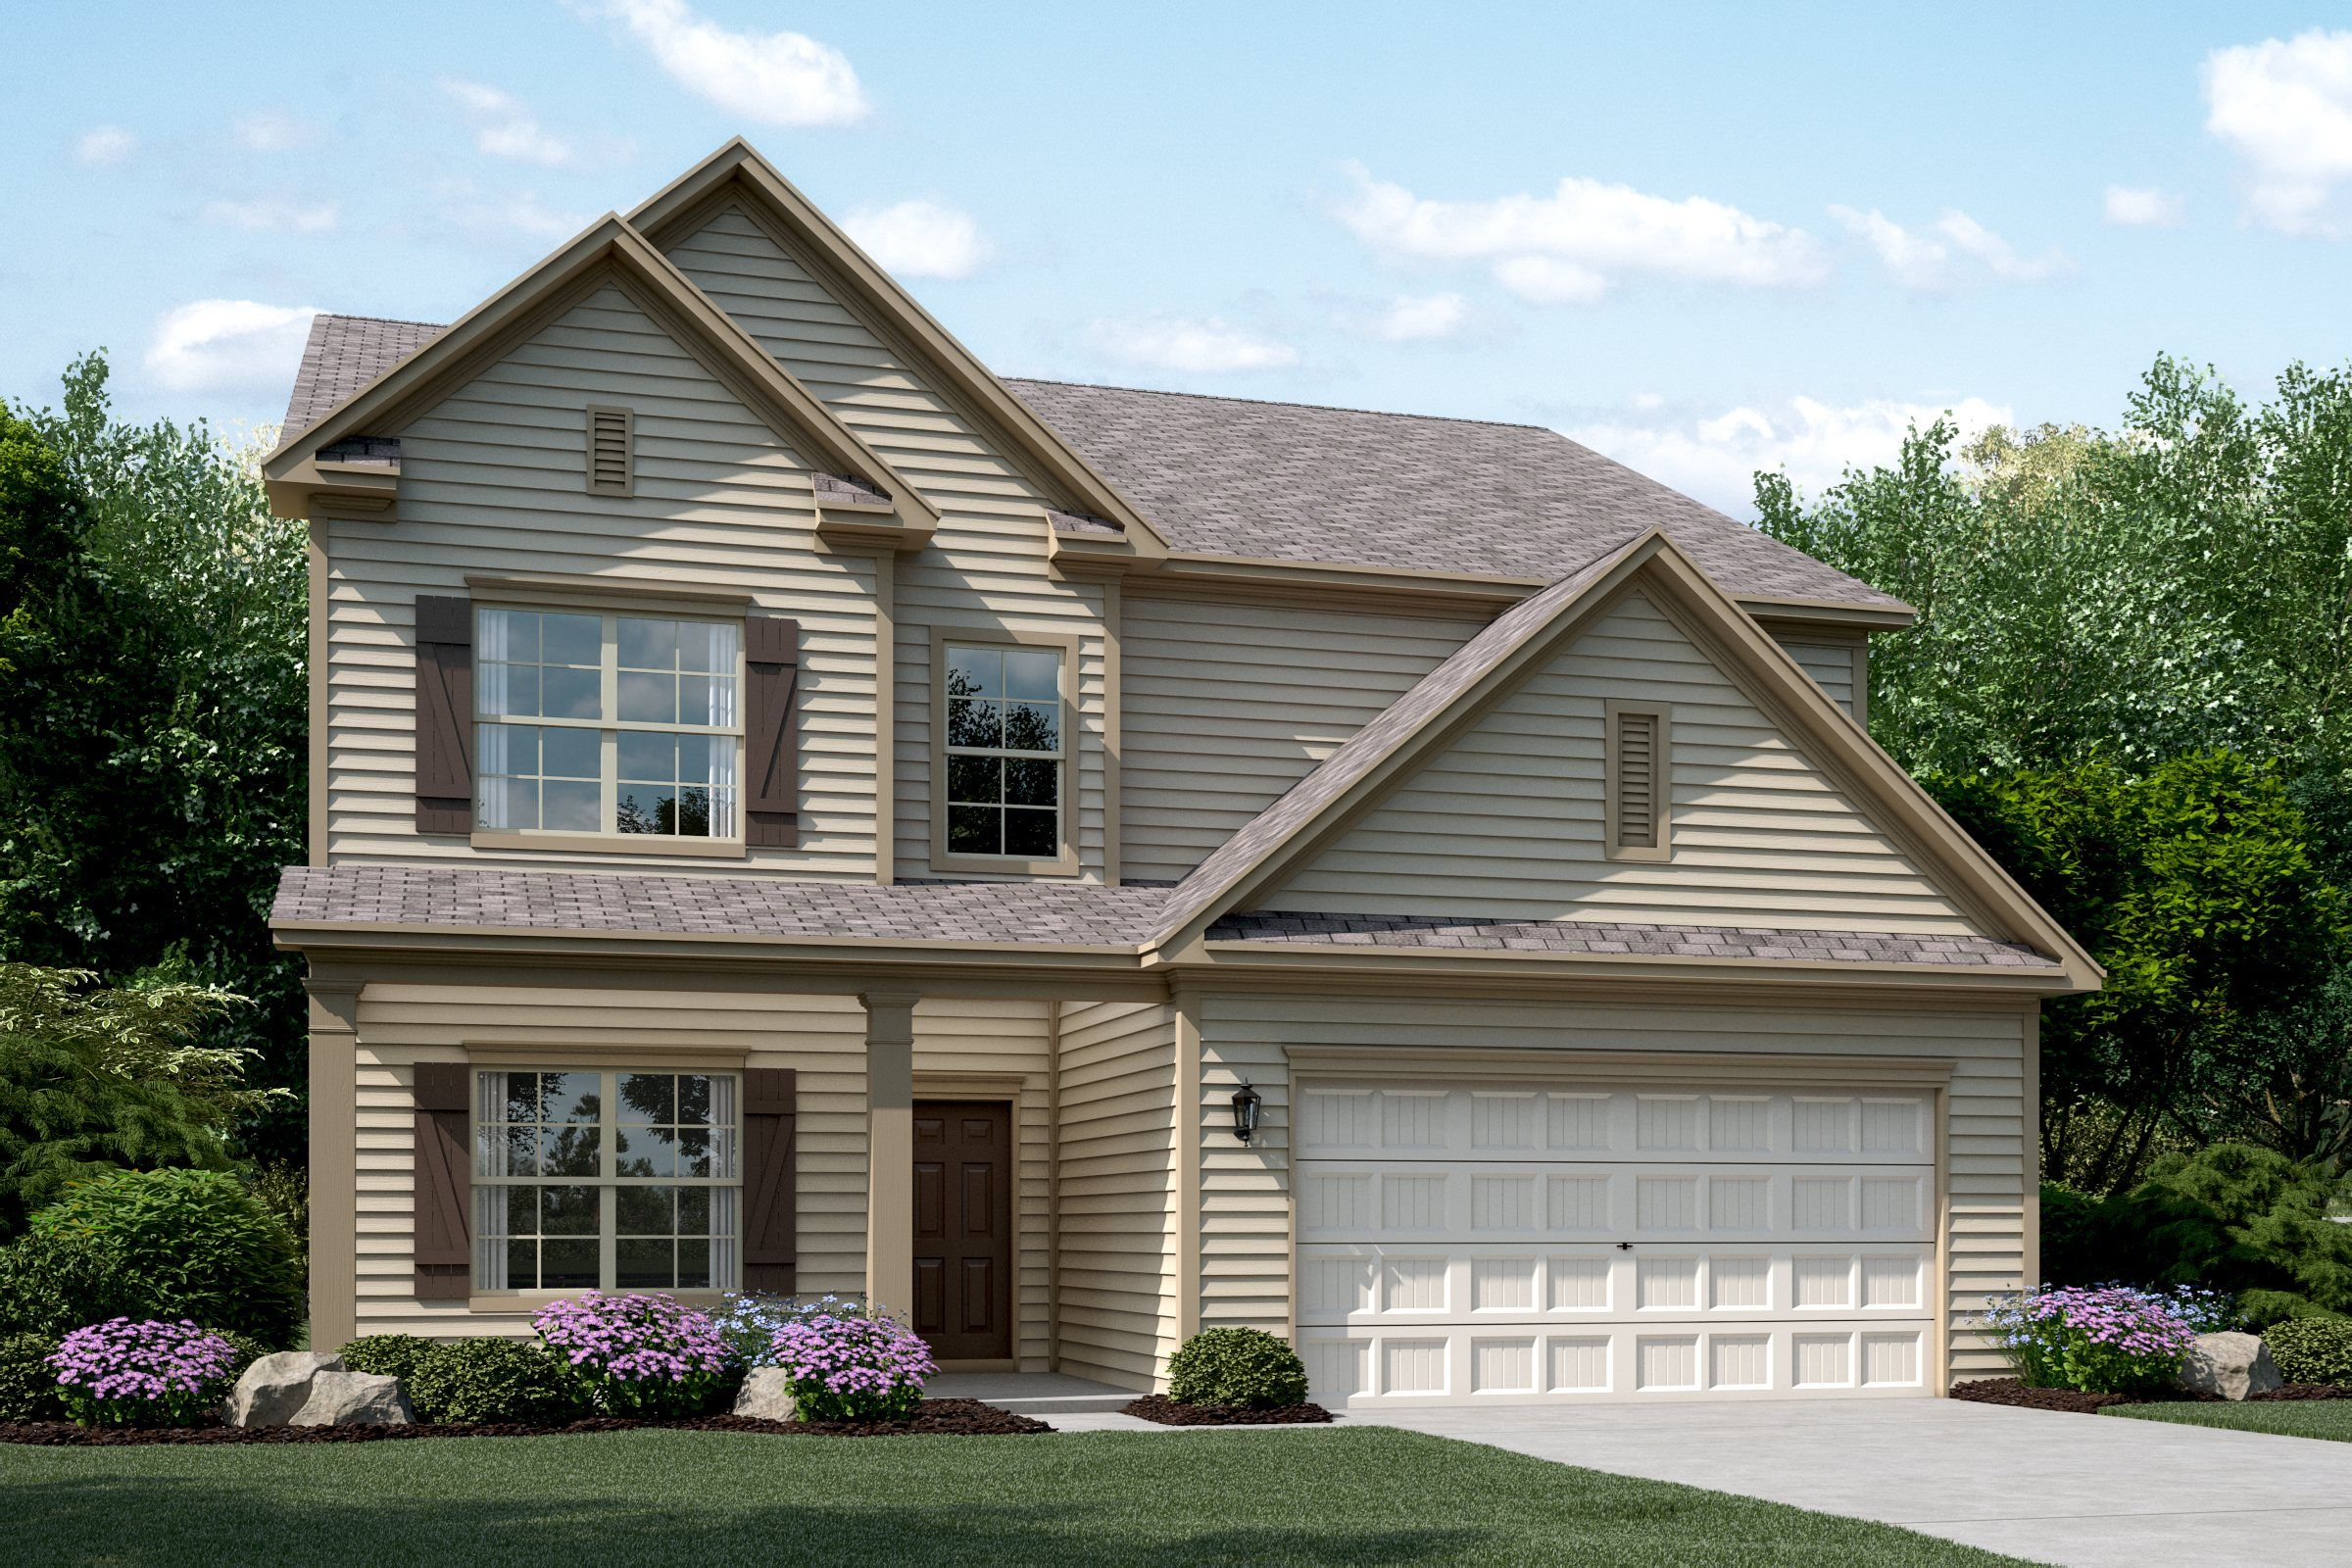 ALDEN-Design-at-Avery Landing - Two Story Homes-in-Holly Springs